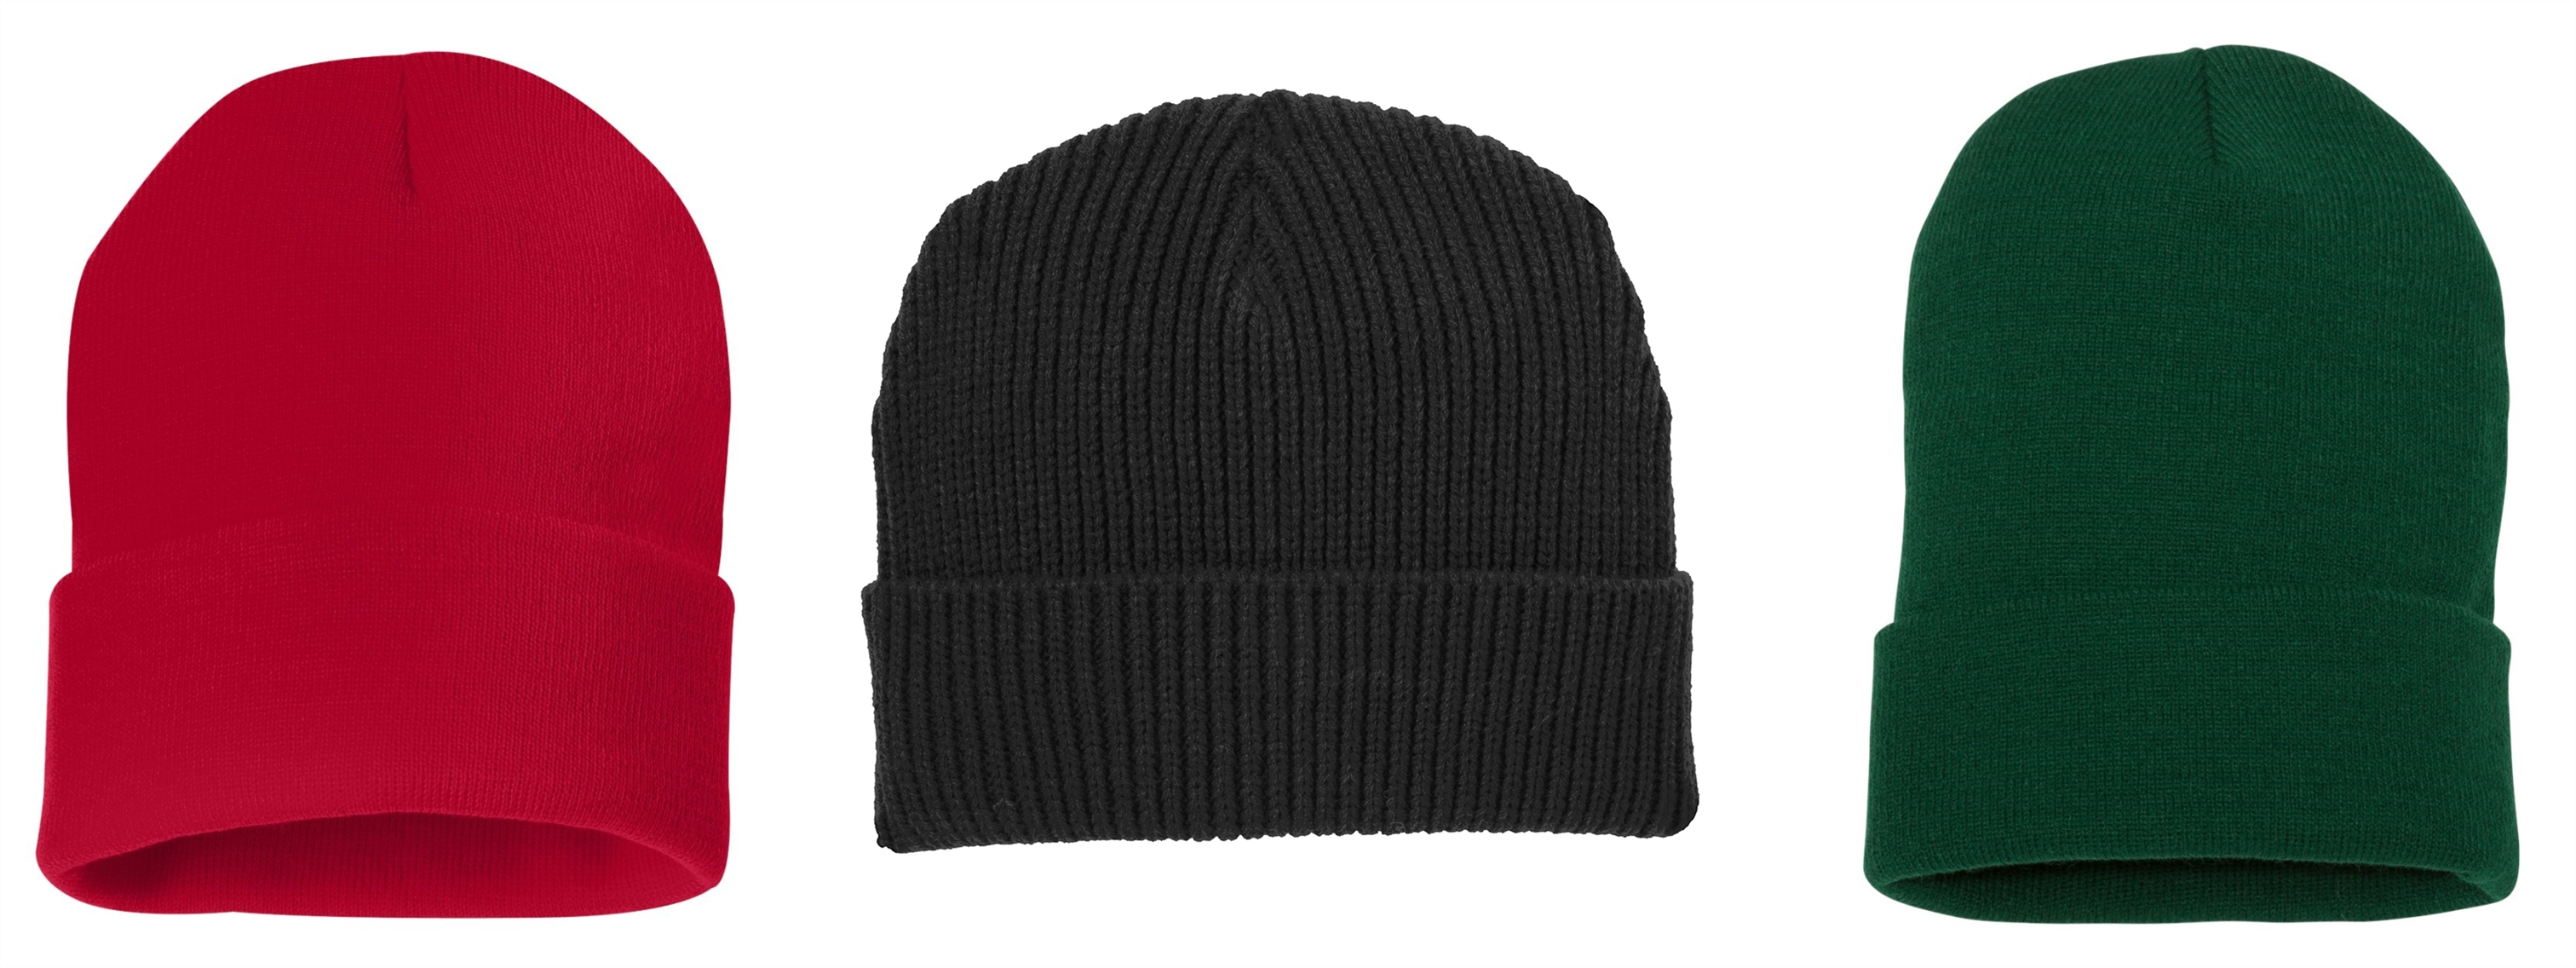 Custom Knit Beanies with Cuff from NYFifth